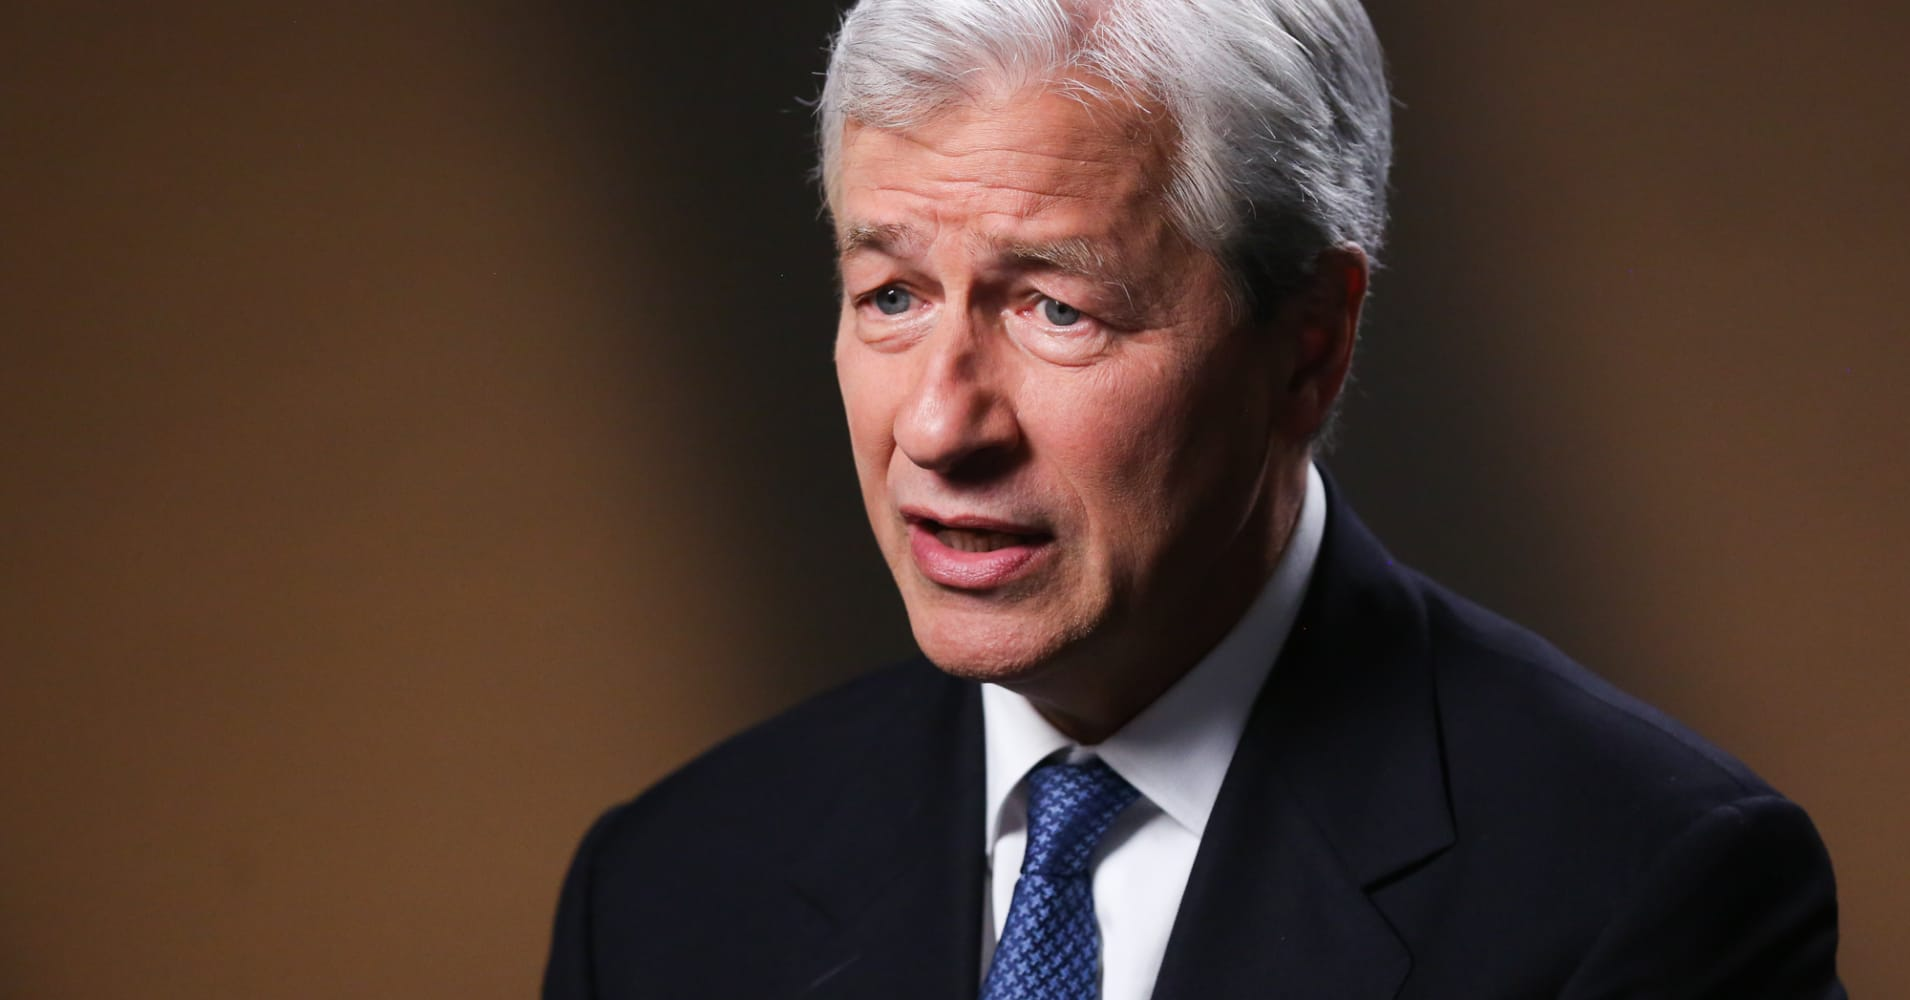 Jamie Dimon sounds warning about 'Geopolitical issues bursting all over the plac...